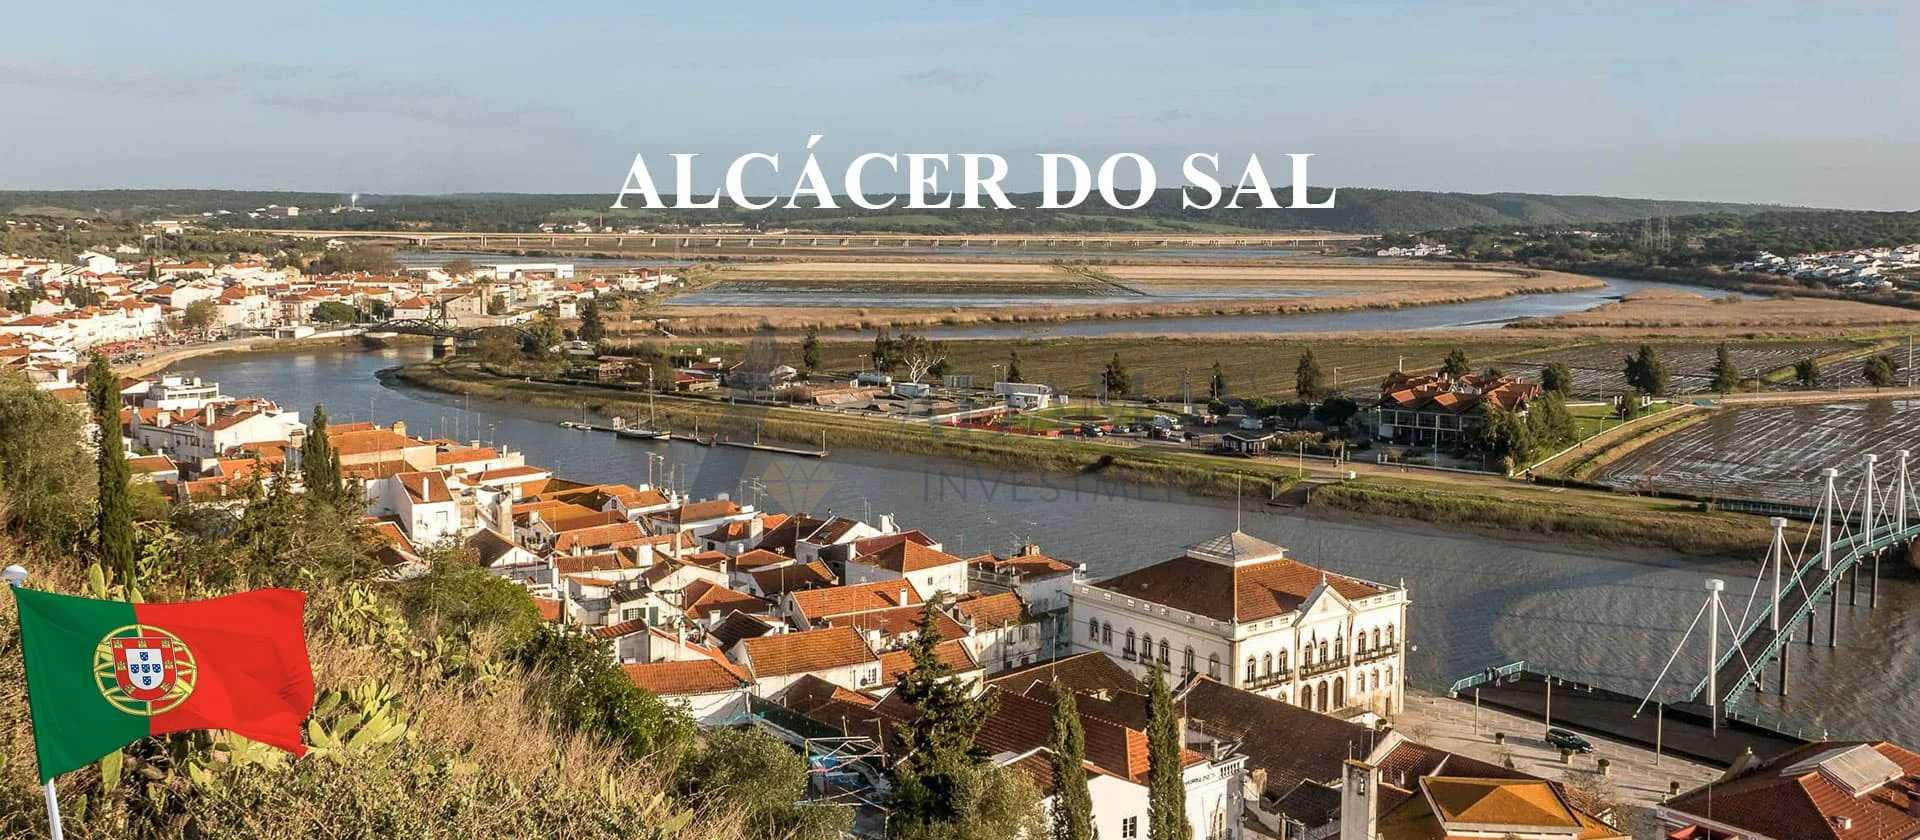 Portugal Alcacer Do Sal - Adamas Global Investment